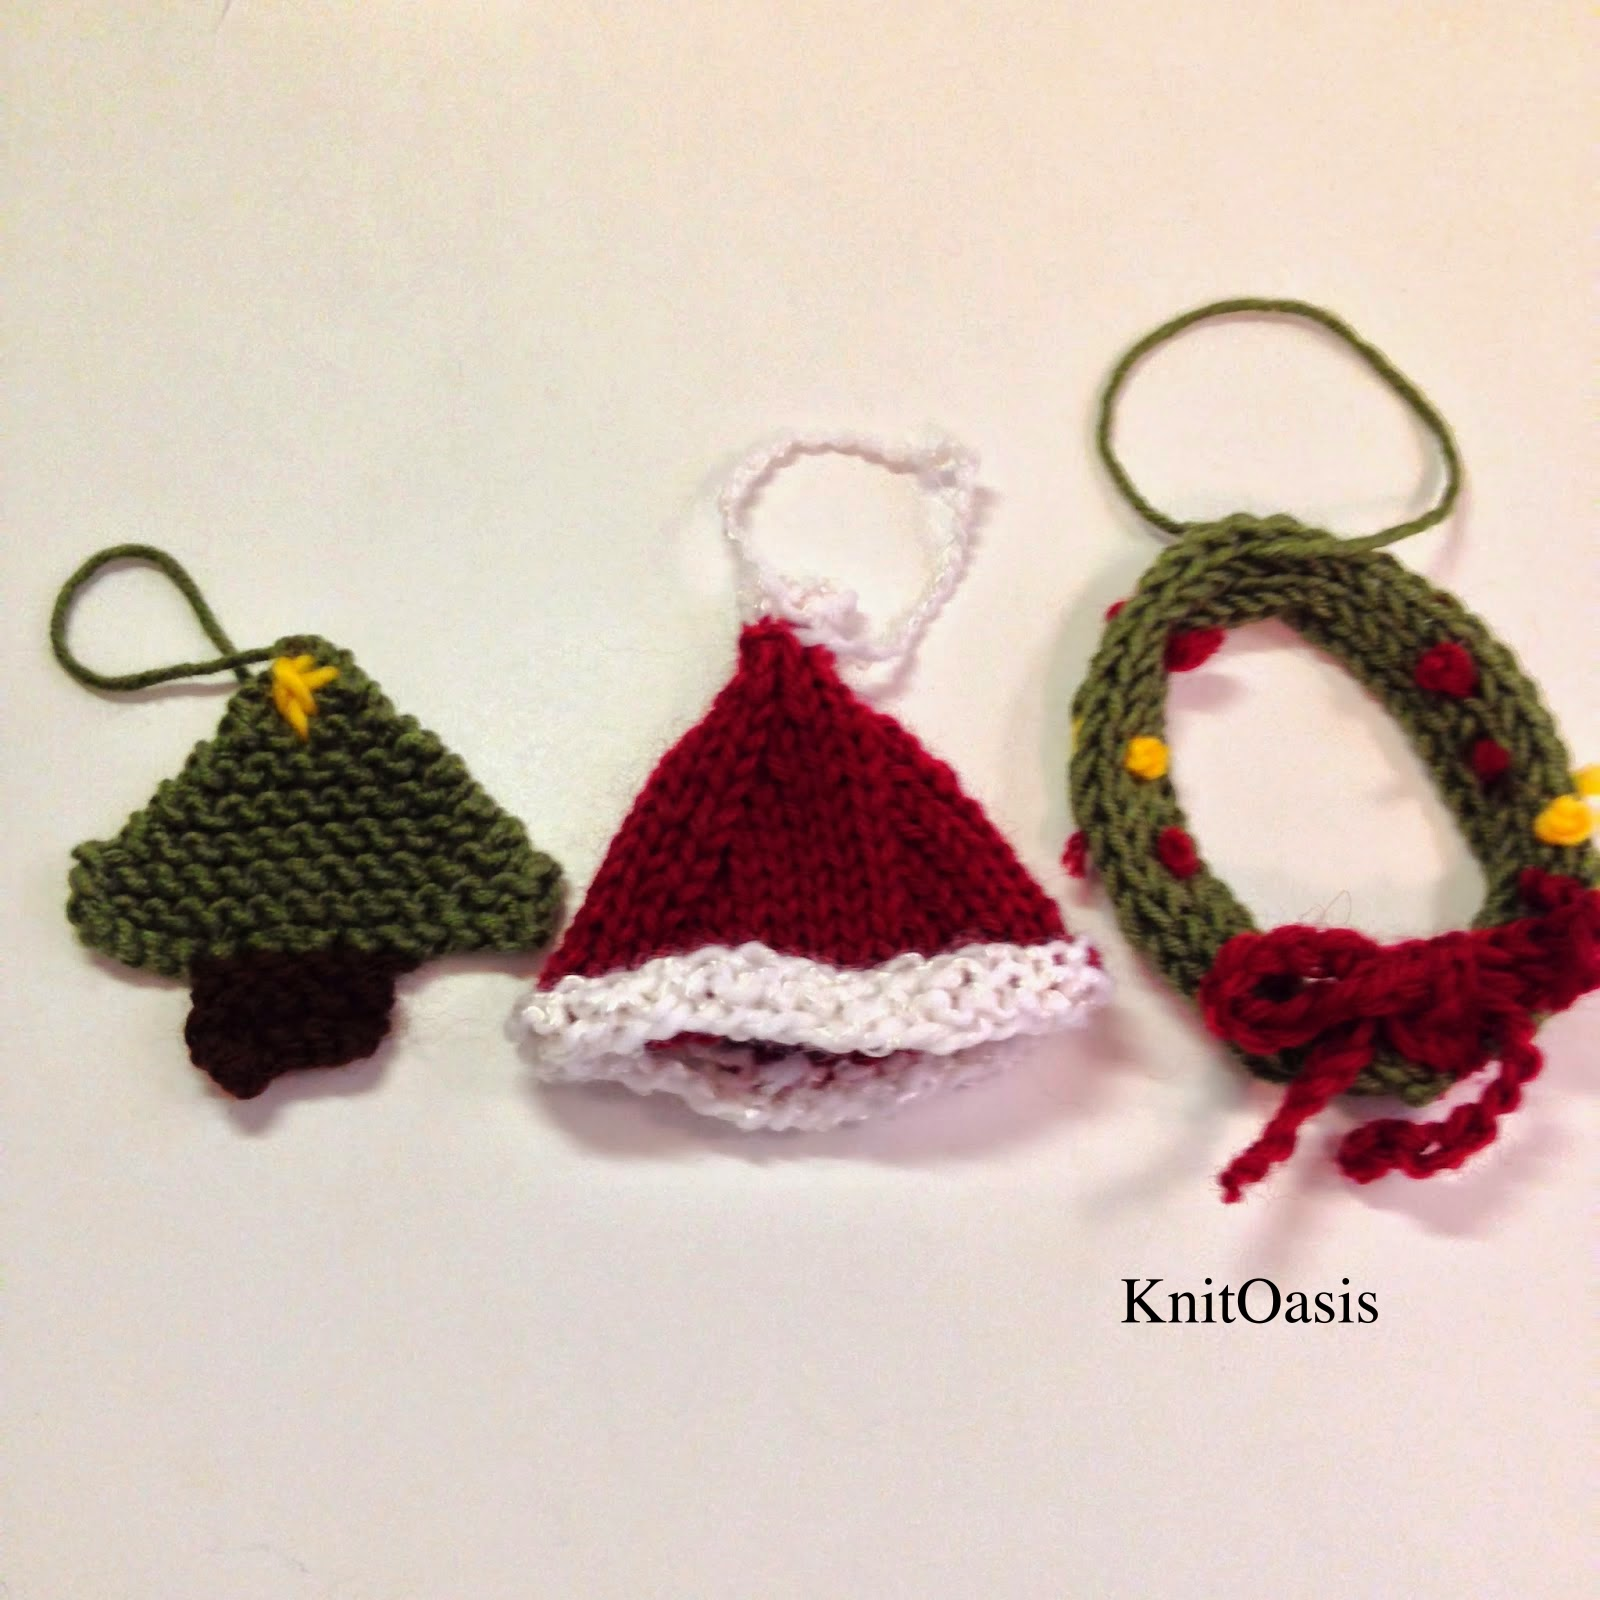 Knitted Christmas Decorations To Buy : Knit oasis creations trio of knitted christmas ornaments